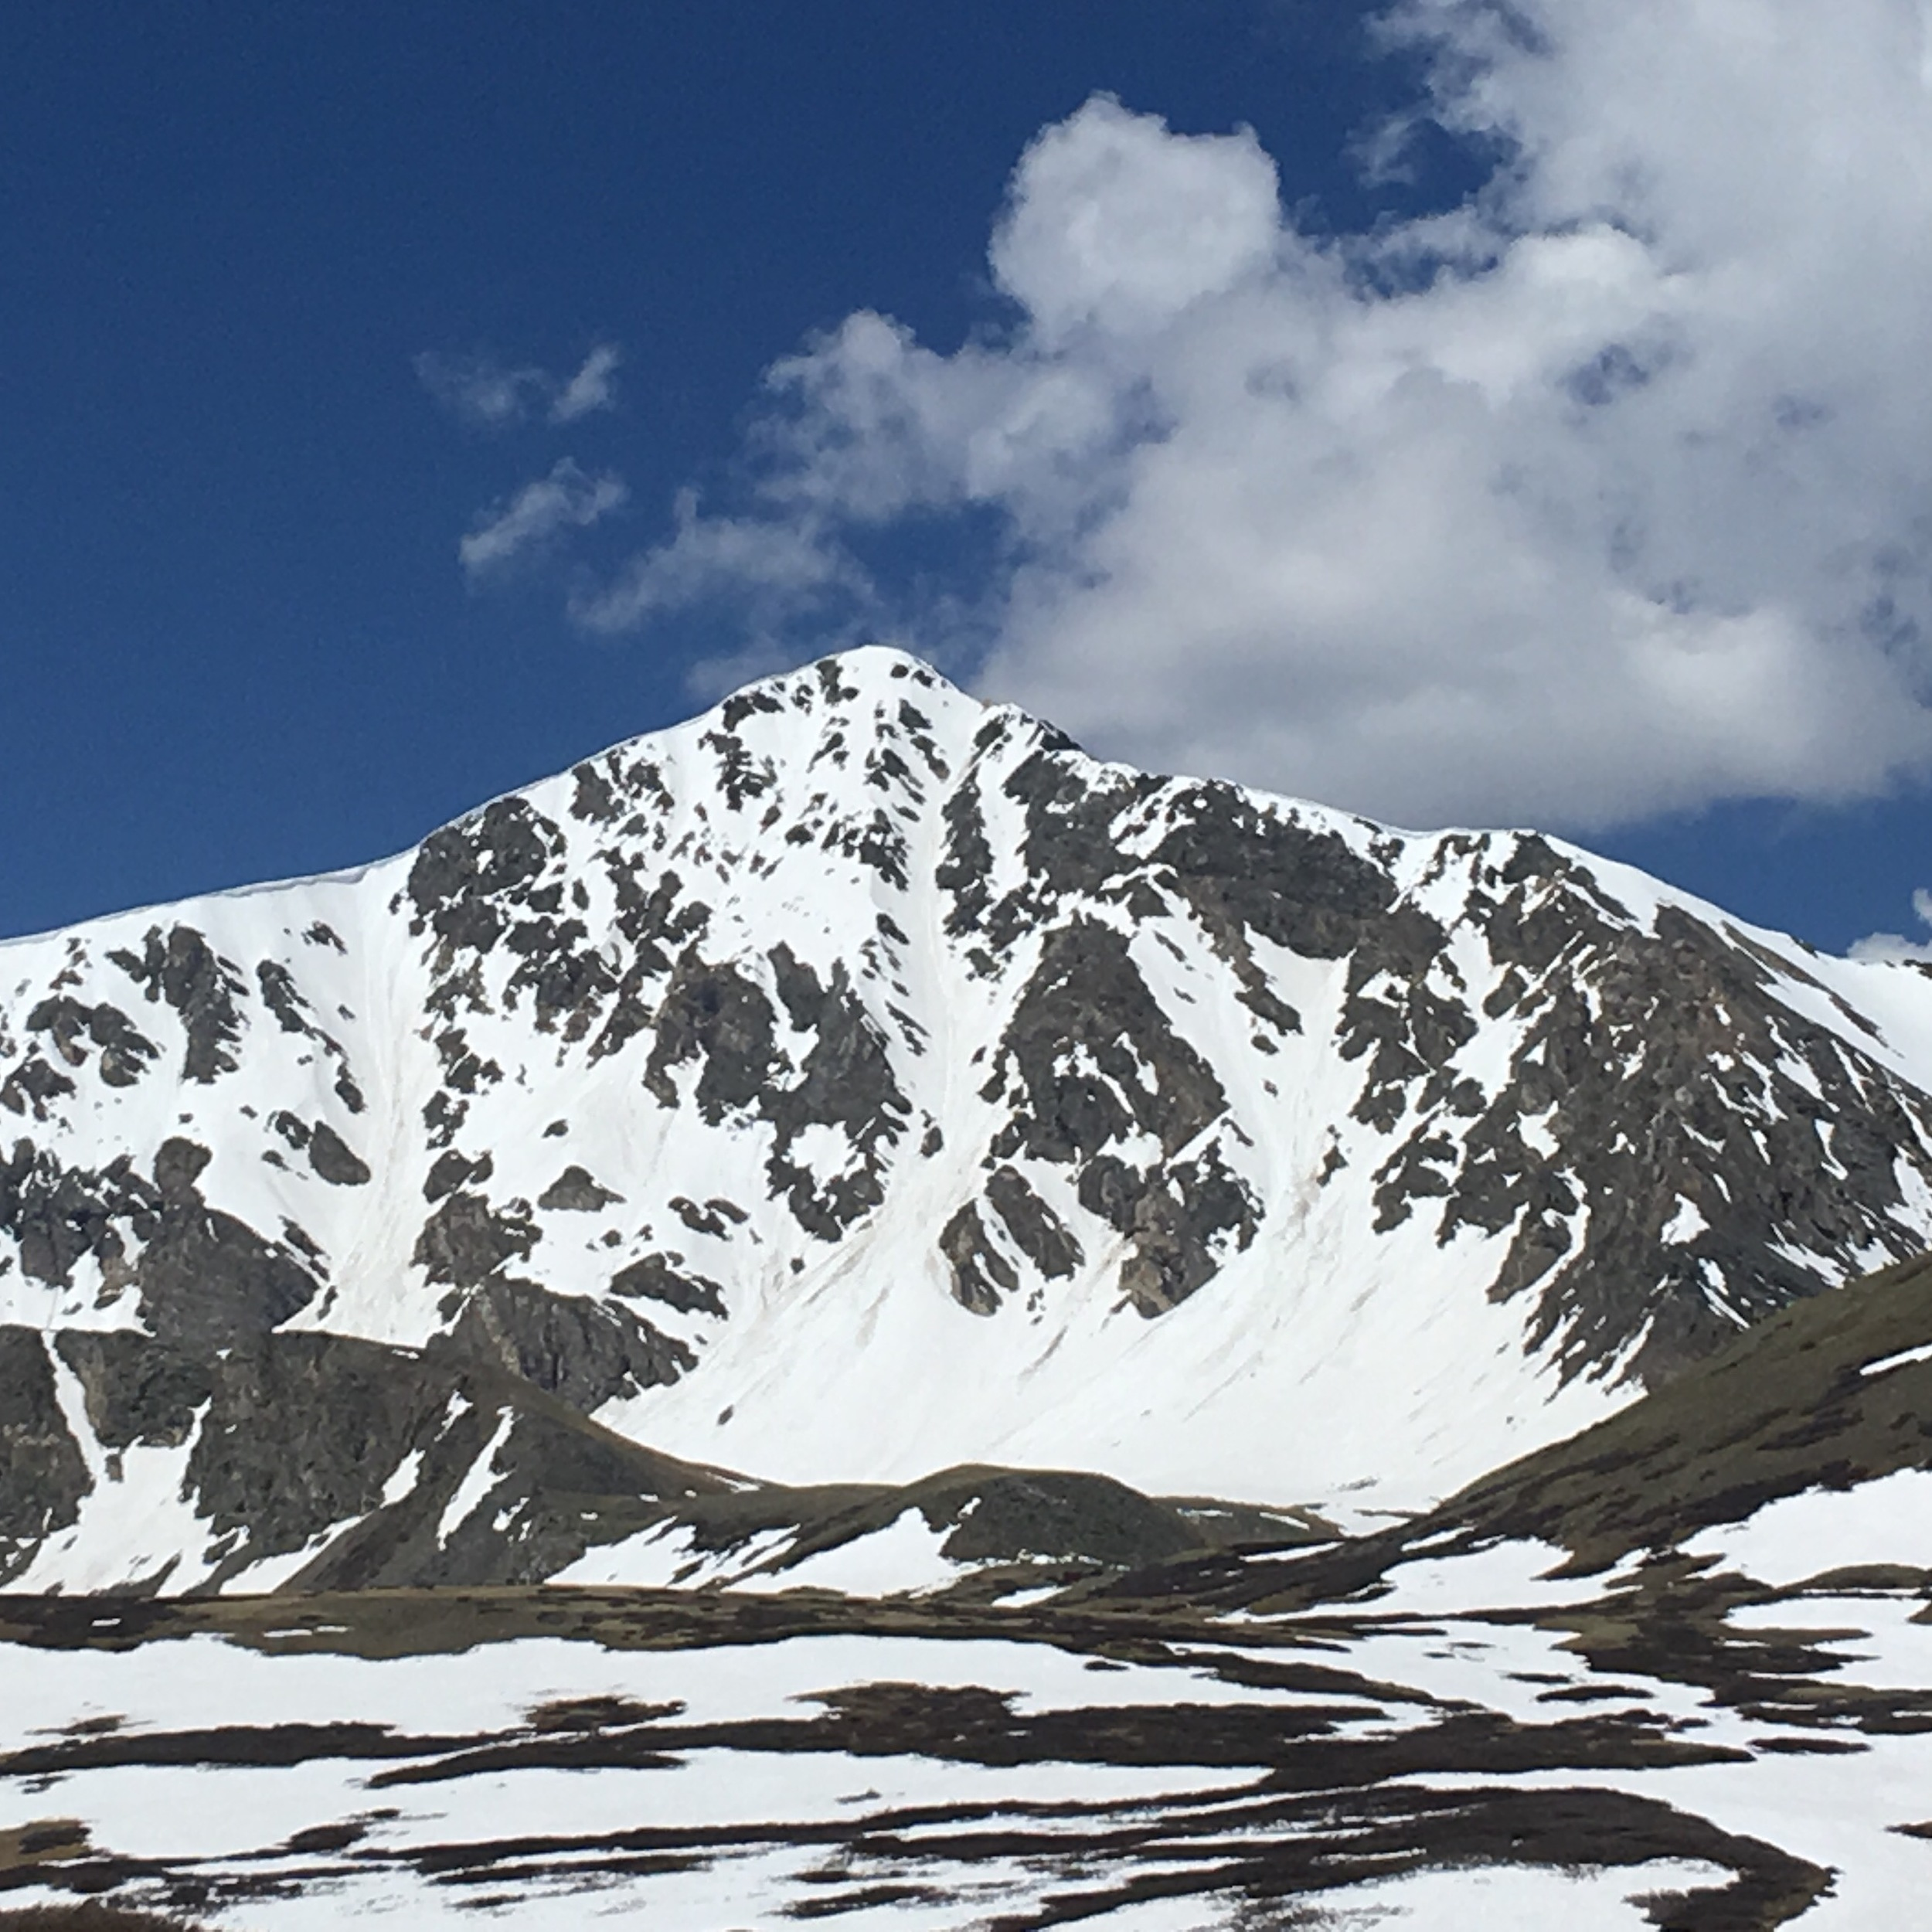 Torreys Peak: South Paw, East Face Direct, Dead Dog